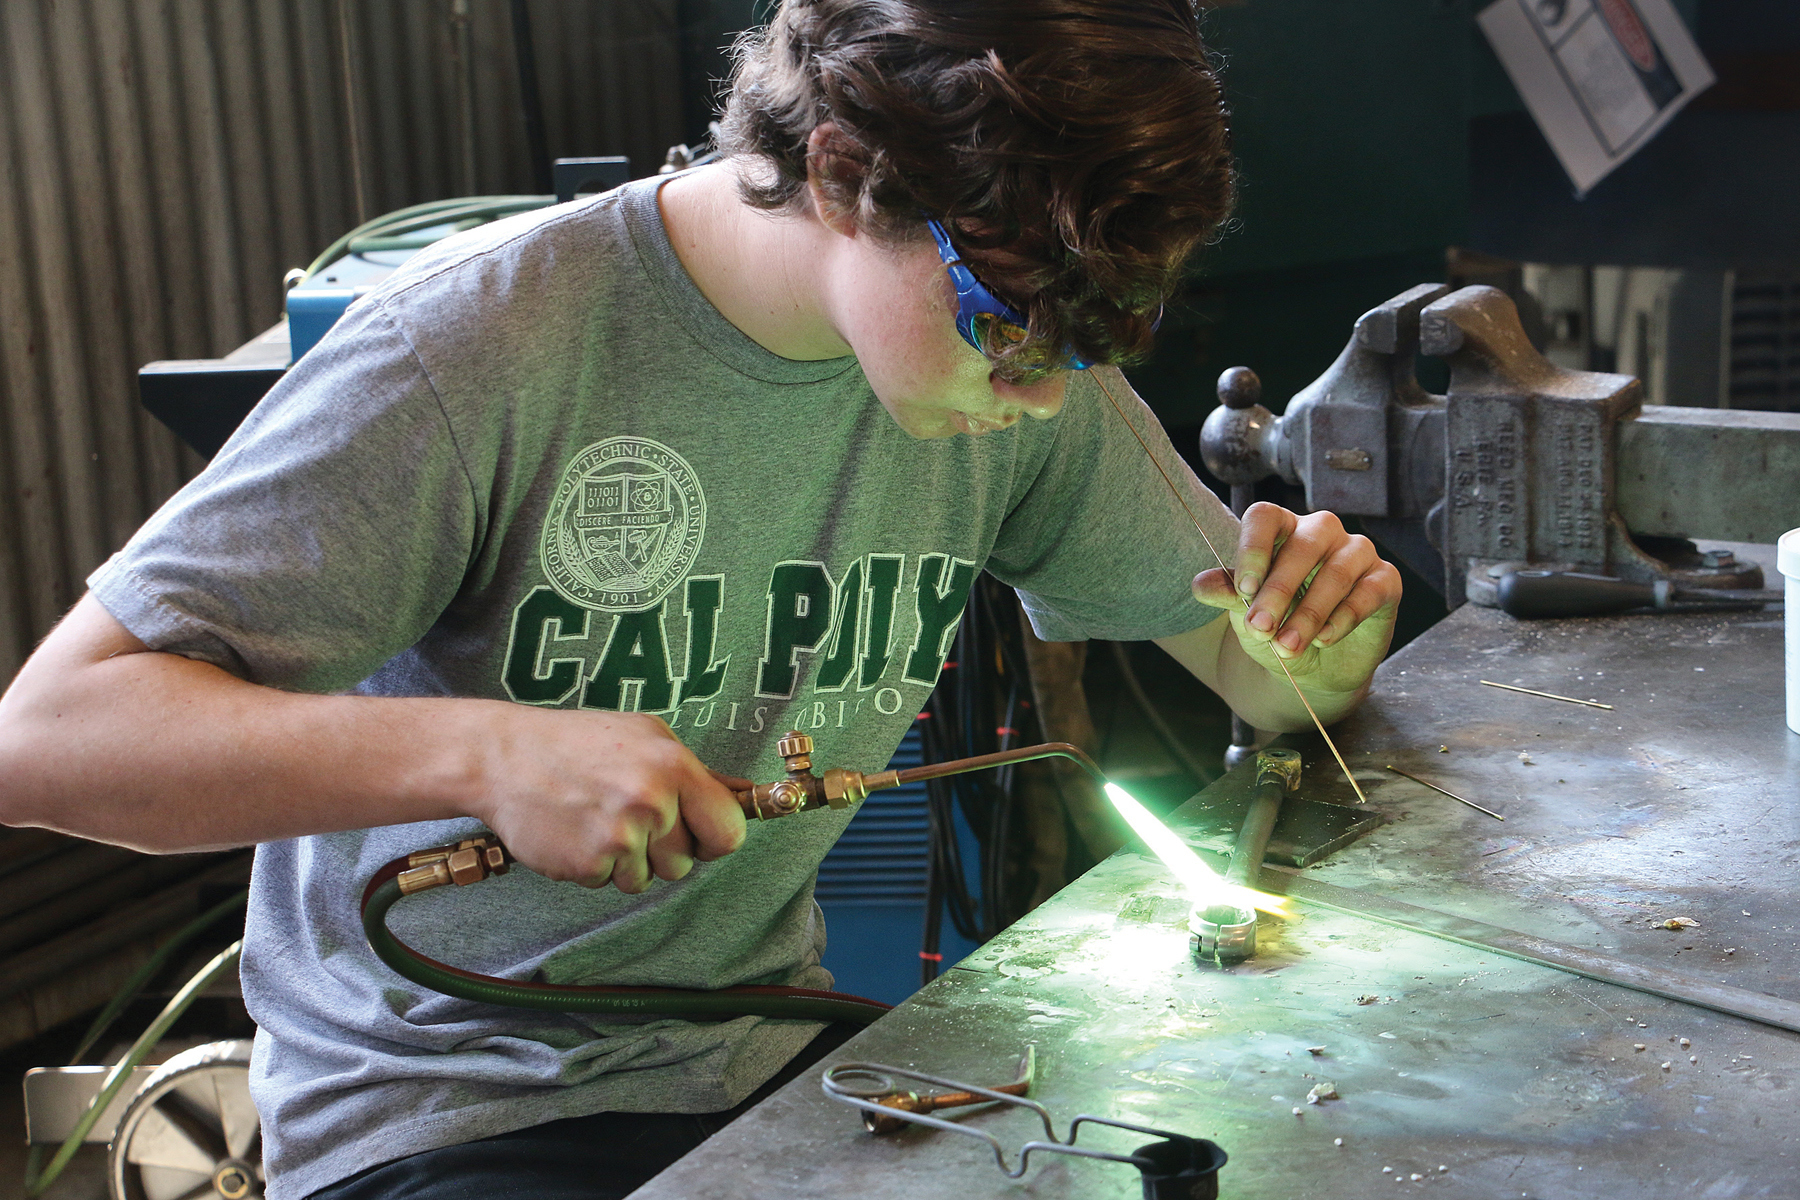 Student wearing safety glasses working in the shop